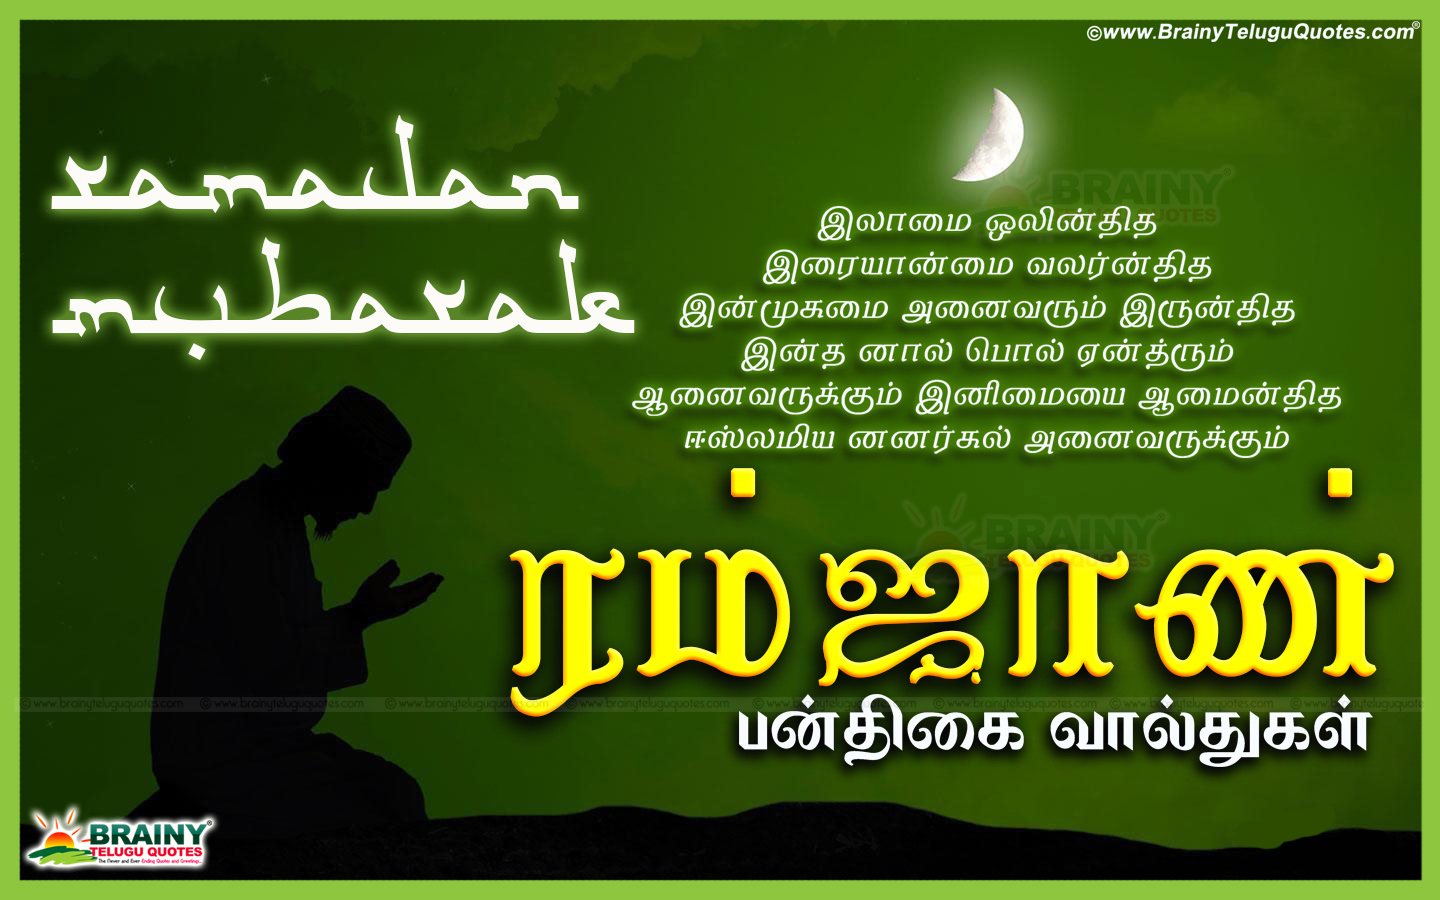 Ramalan hug best tamil ramalan images and quotes quotes and cute ramadan quotations images in tamil language best tamil language 2016 ramadan quotes greetings latest tamil top ramalan images and eid kristyandbryce Choice Image